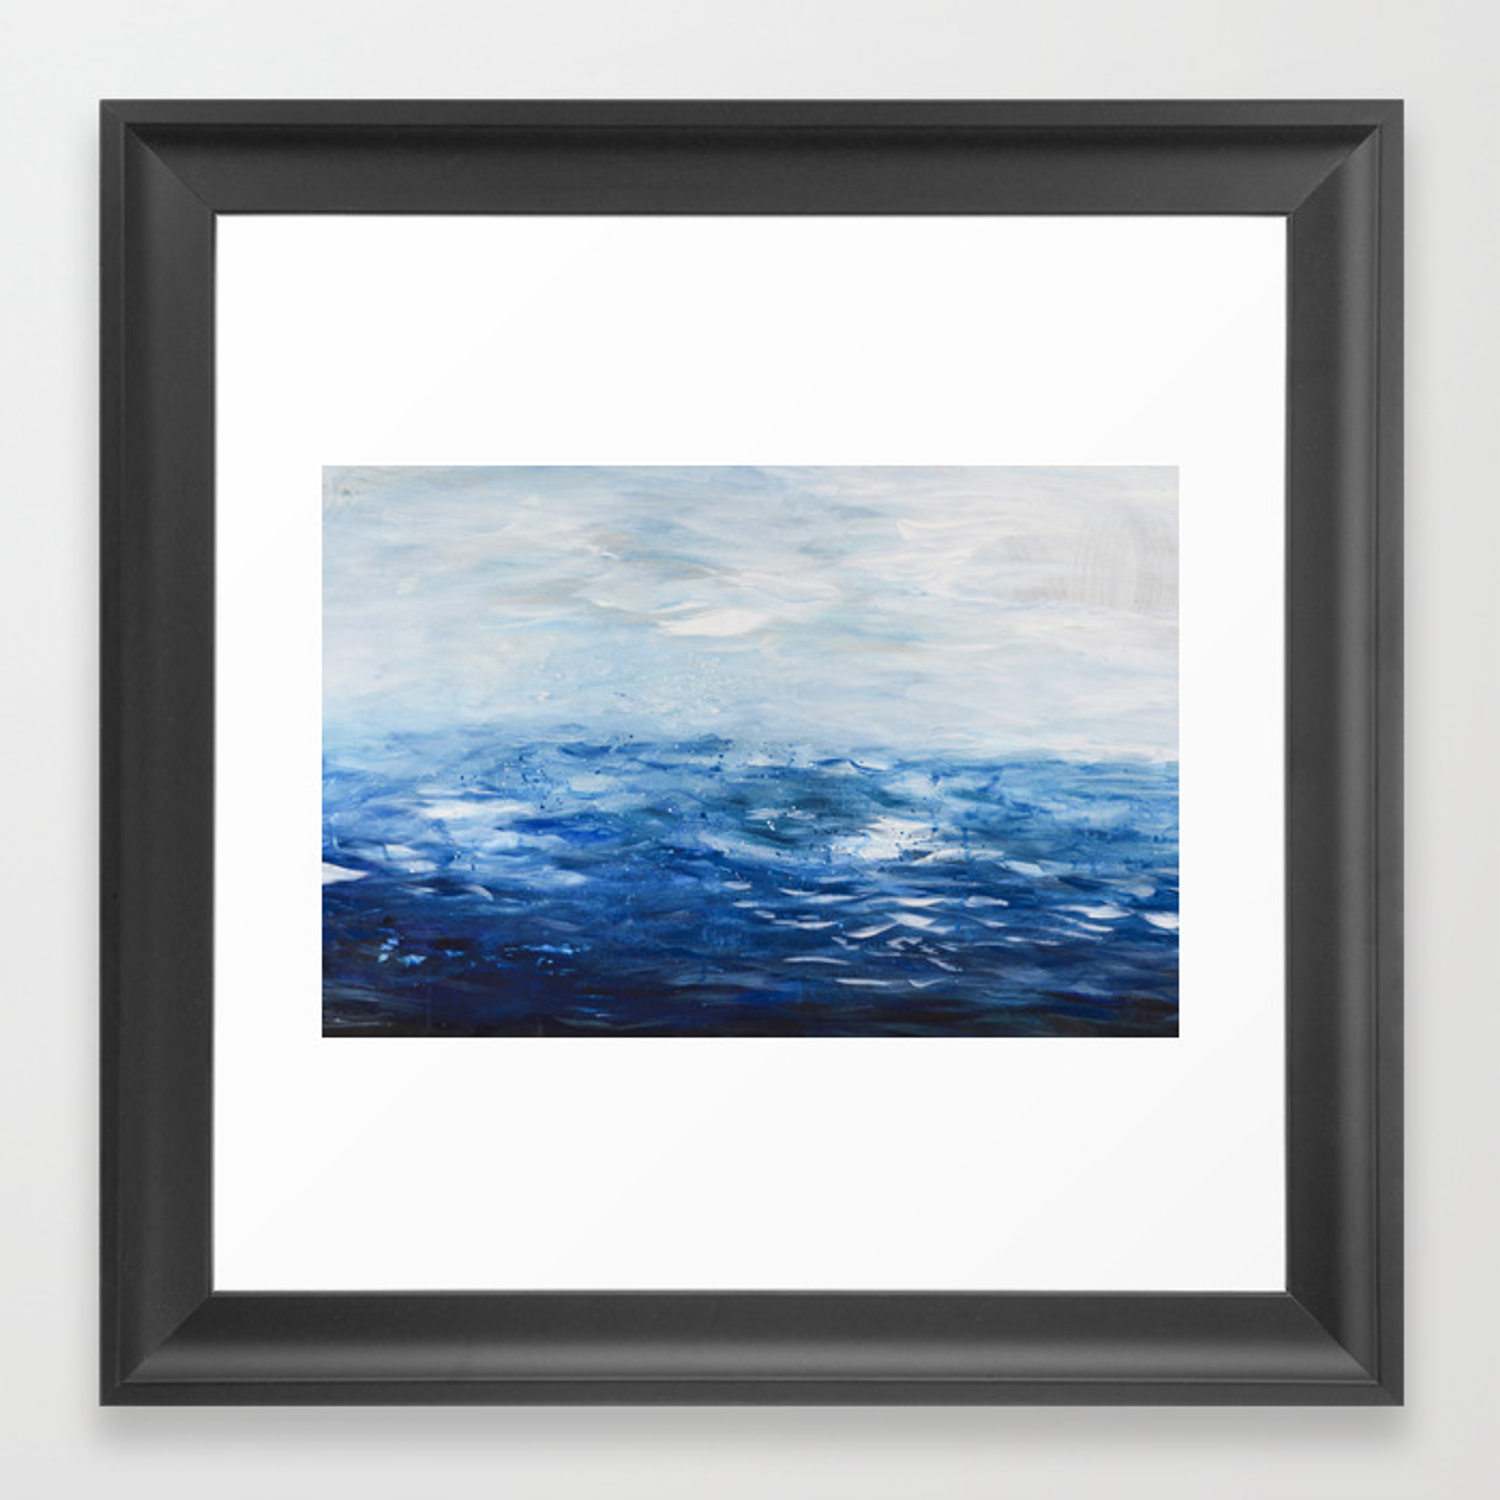 Paint 10 Abstract Water Ocean Seascape Modern Painting Dorm Room Decor Affordable Stretched Canvas Framed Art Print By Andrealauren Society6